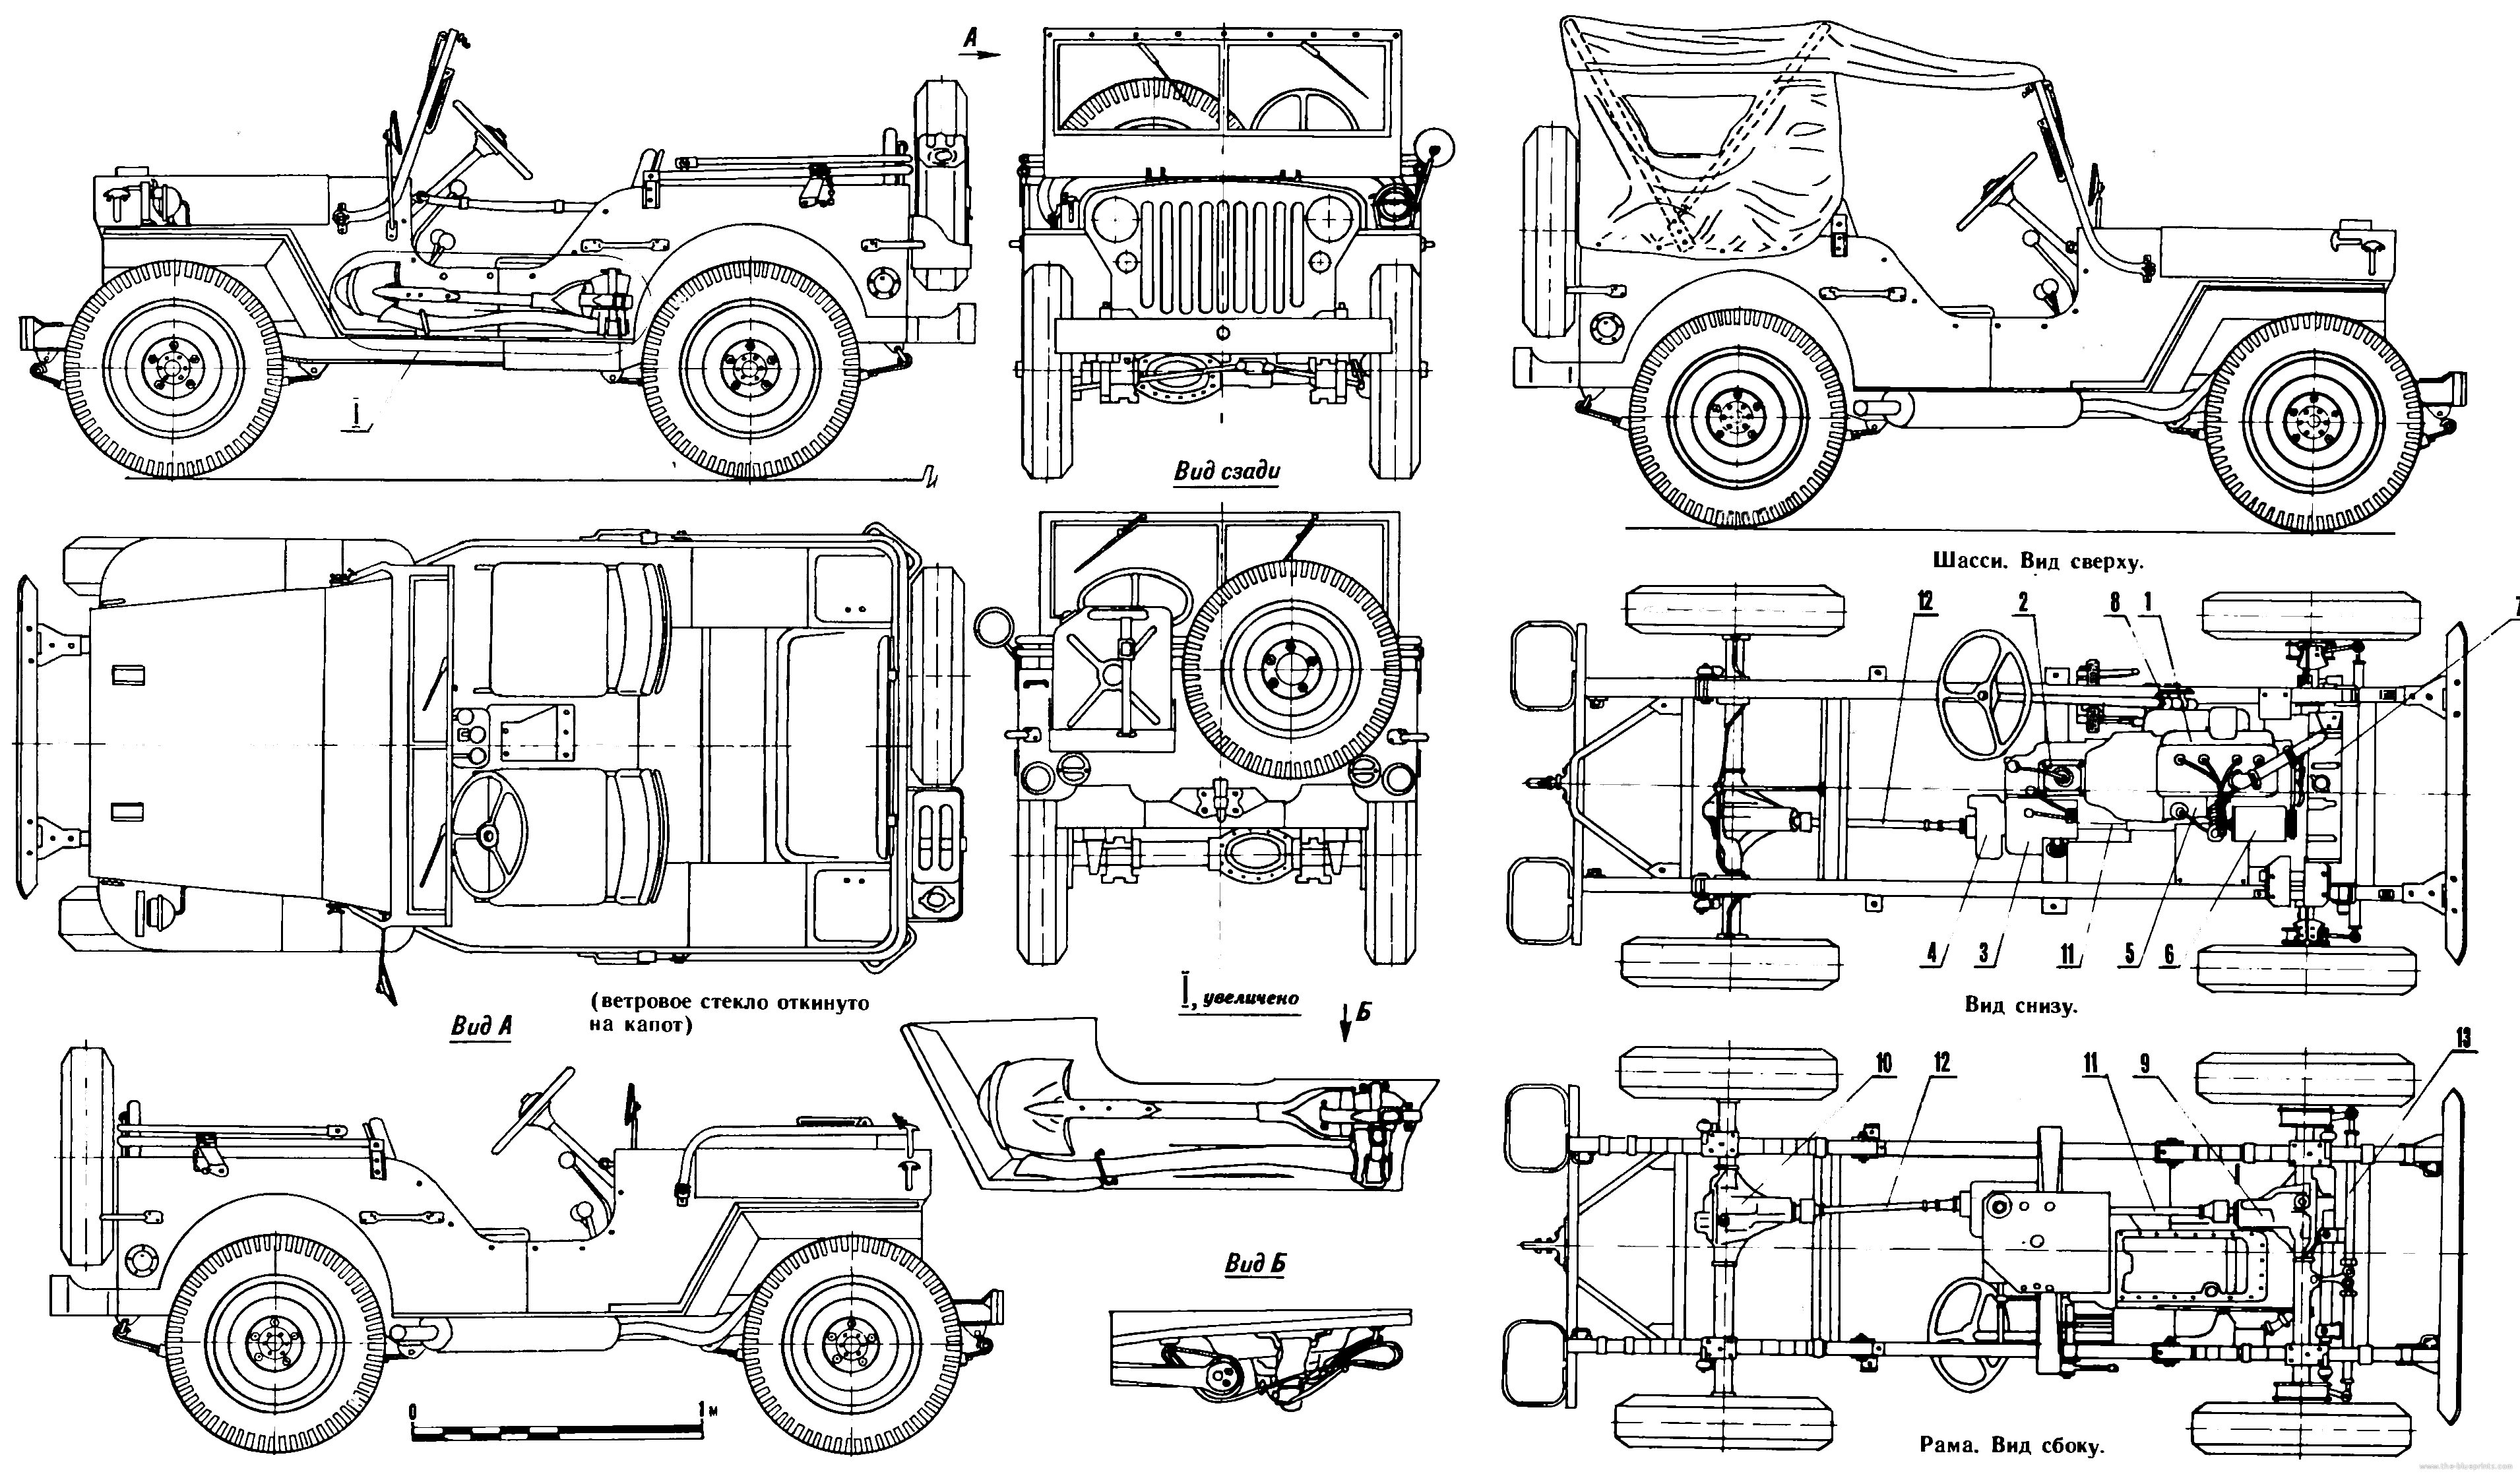 Beautiful Sports Car Blueprints Ideas - Wiring Diagram Ideas ...